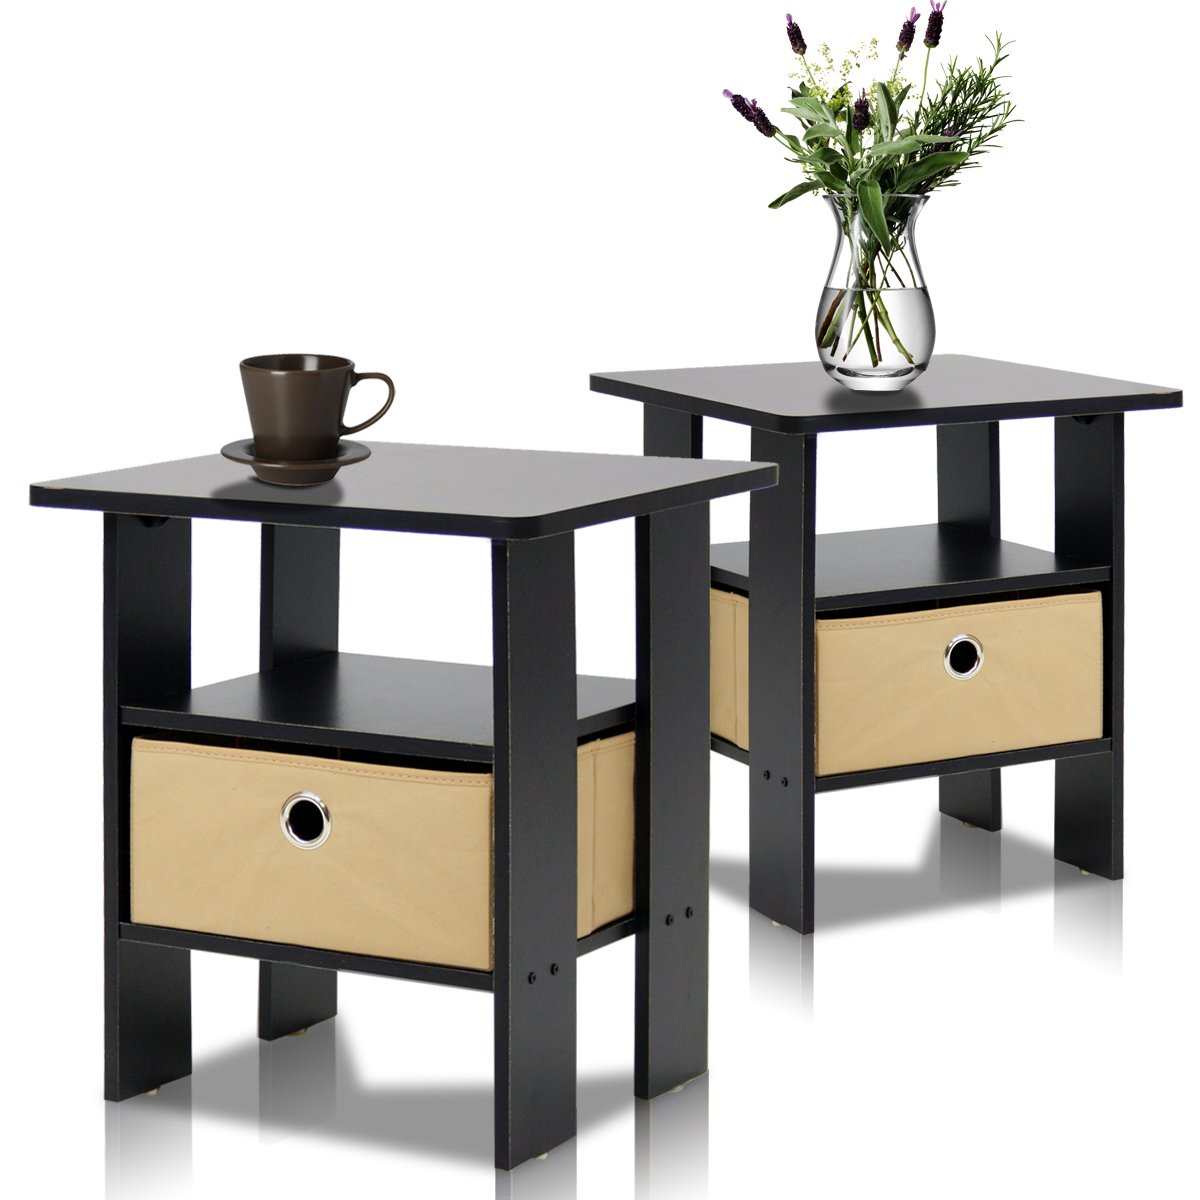 Furinno 2-11157EX End Table Bedroom Night Stand, Petite, Espresso, Set of 2 by Furinno